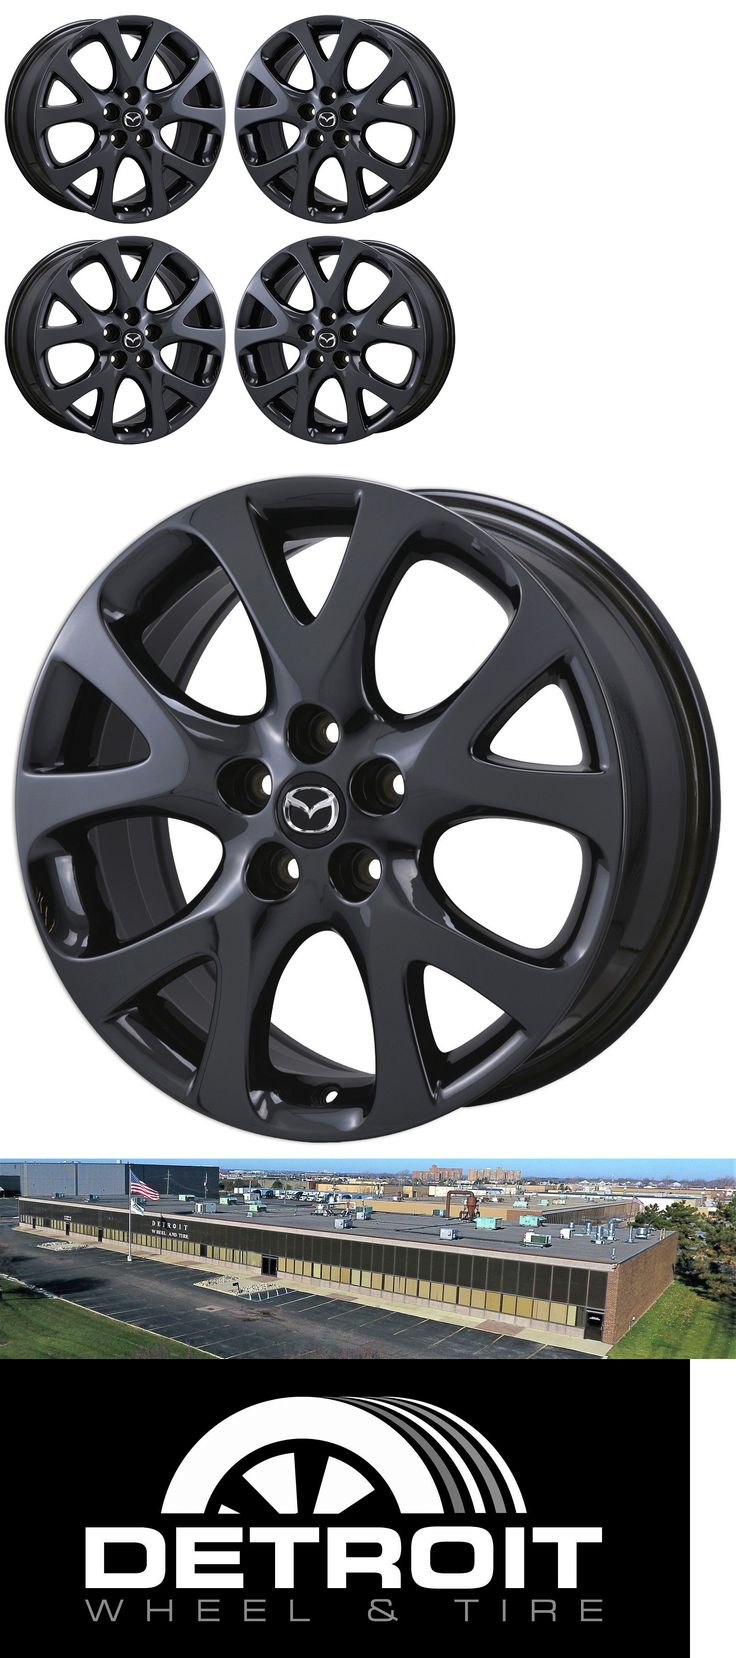 auto parts - general: 18 Mazda 6 Black Chrome Wheels Rims Factory Oem Set 4 64919 64943 -> BUY IT NOW ONLY: $945 on eBay!